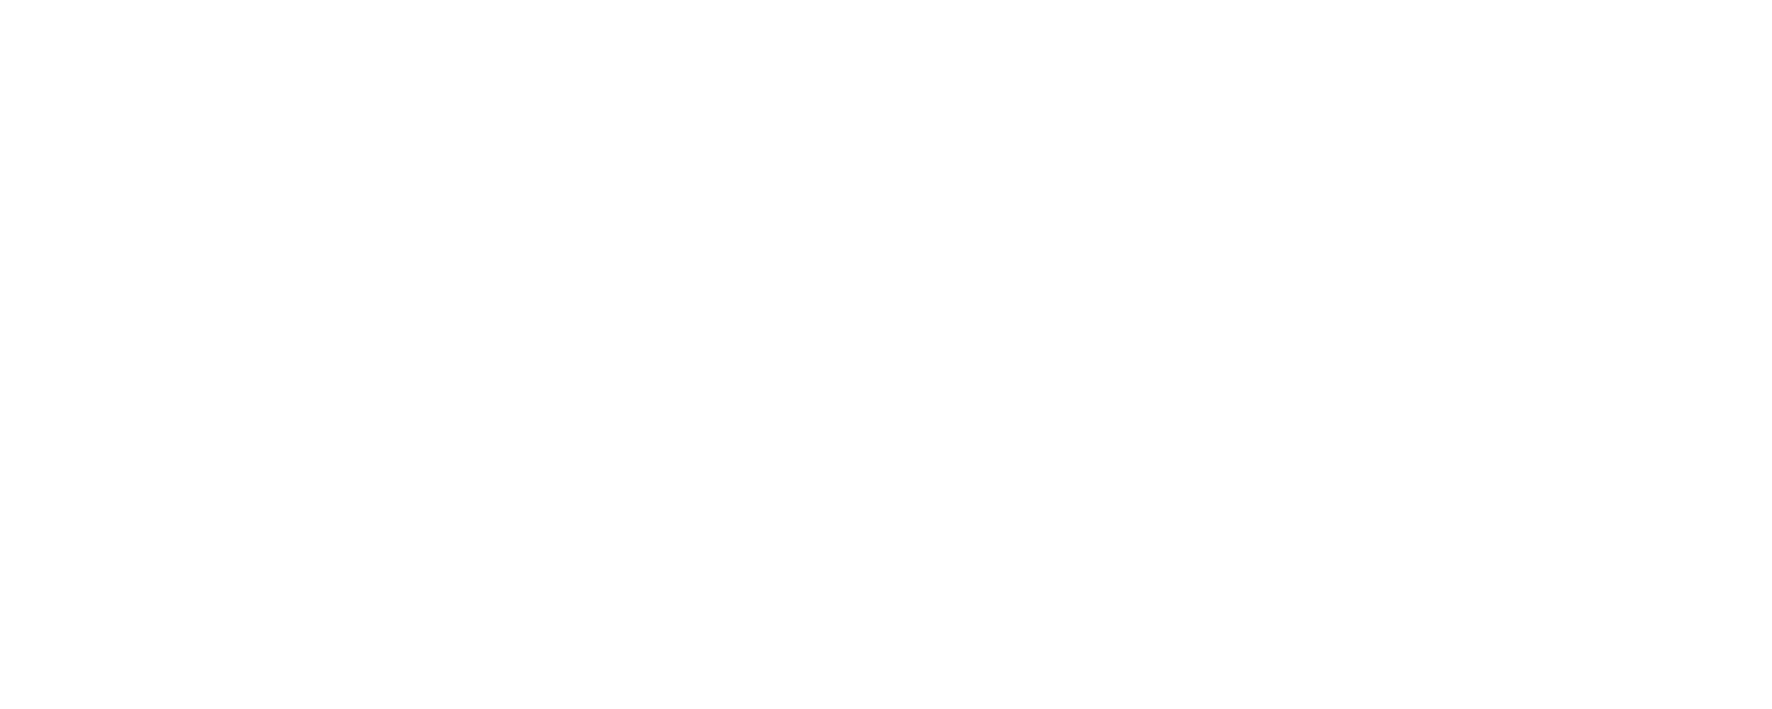 New Energy for Industry